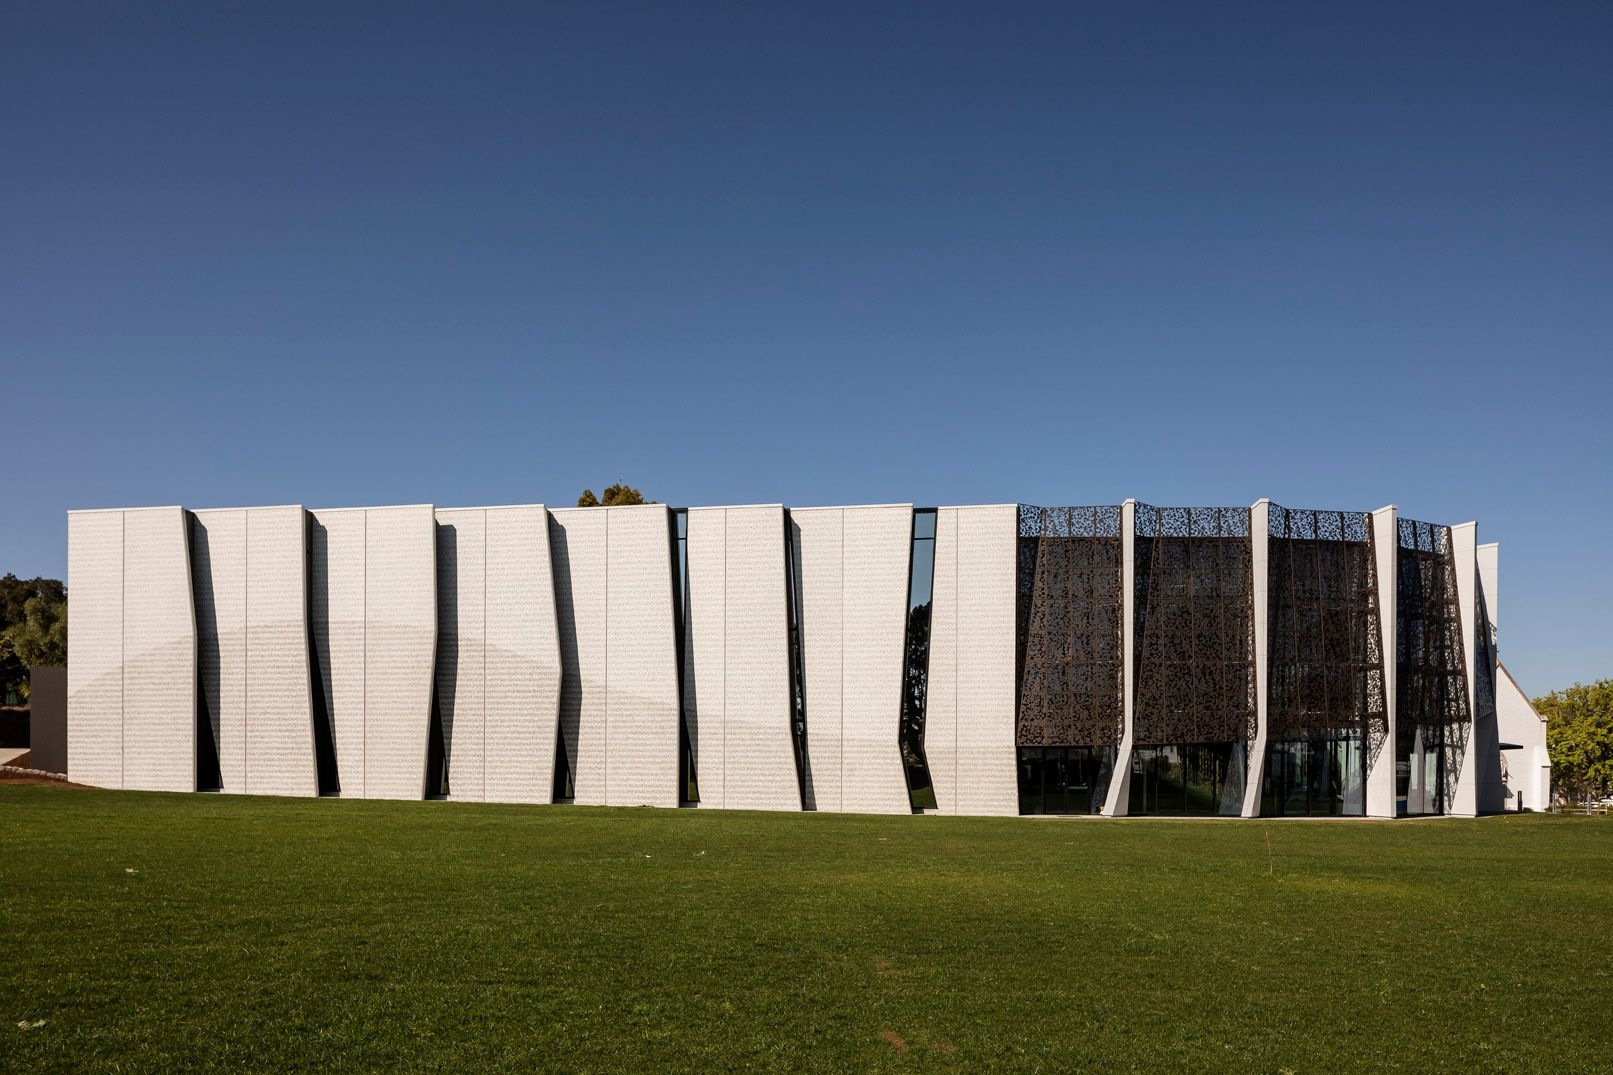 diocesan school for girls performing arts centre concrete